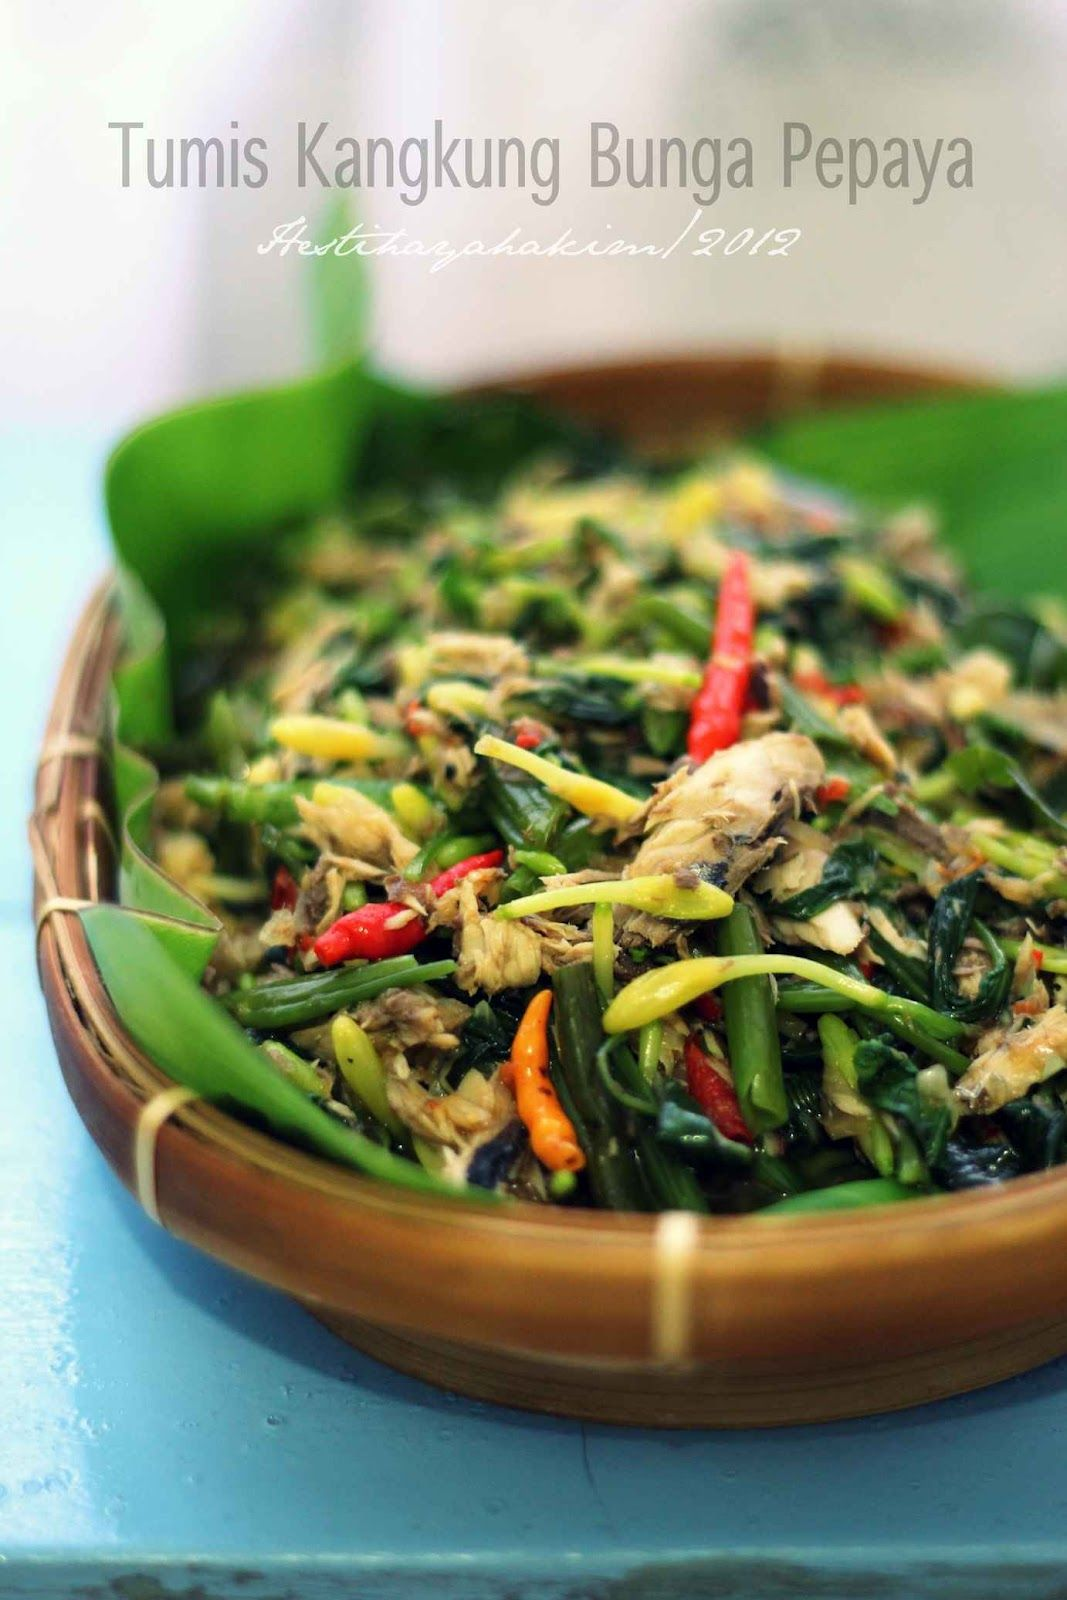 Hesti S Kitchen Yummy For Your Tummy Tumis Kangkung Bunga Pepaya Resep Masakan Masakan Tumis